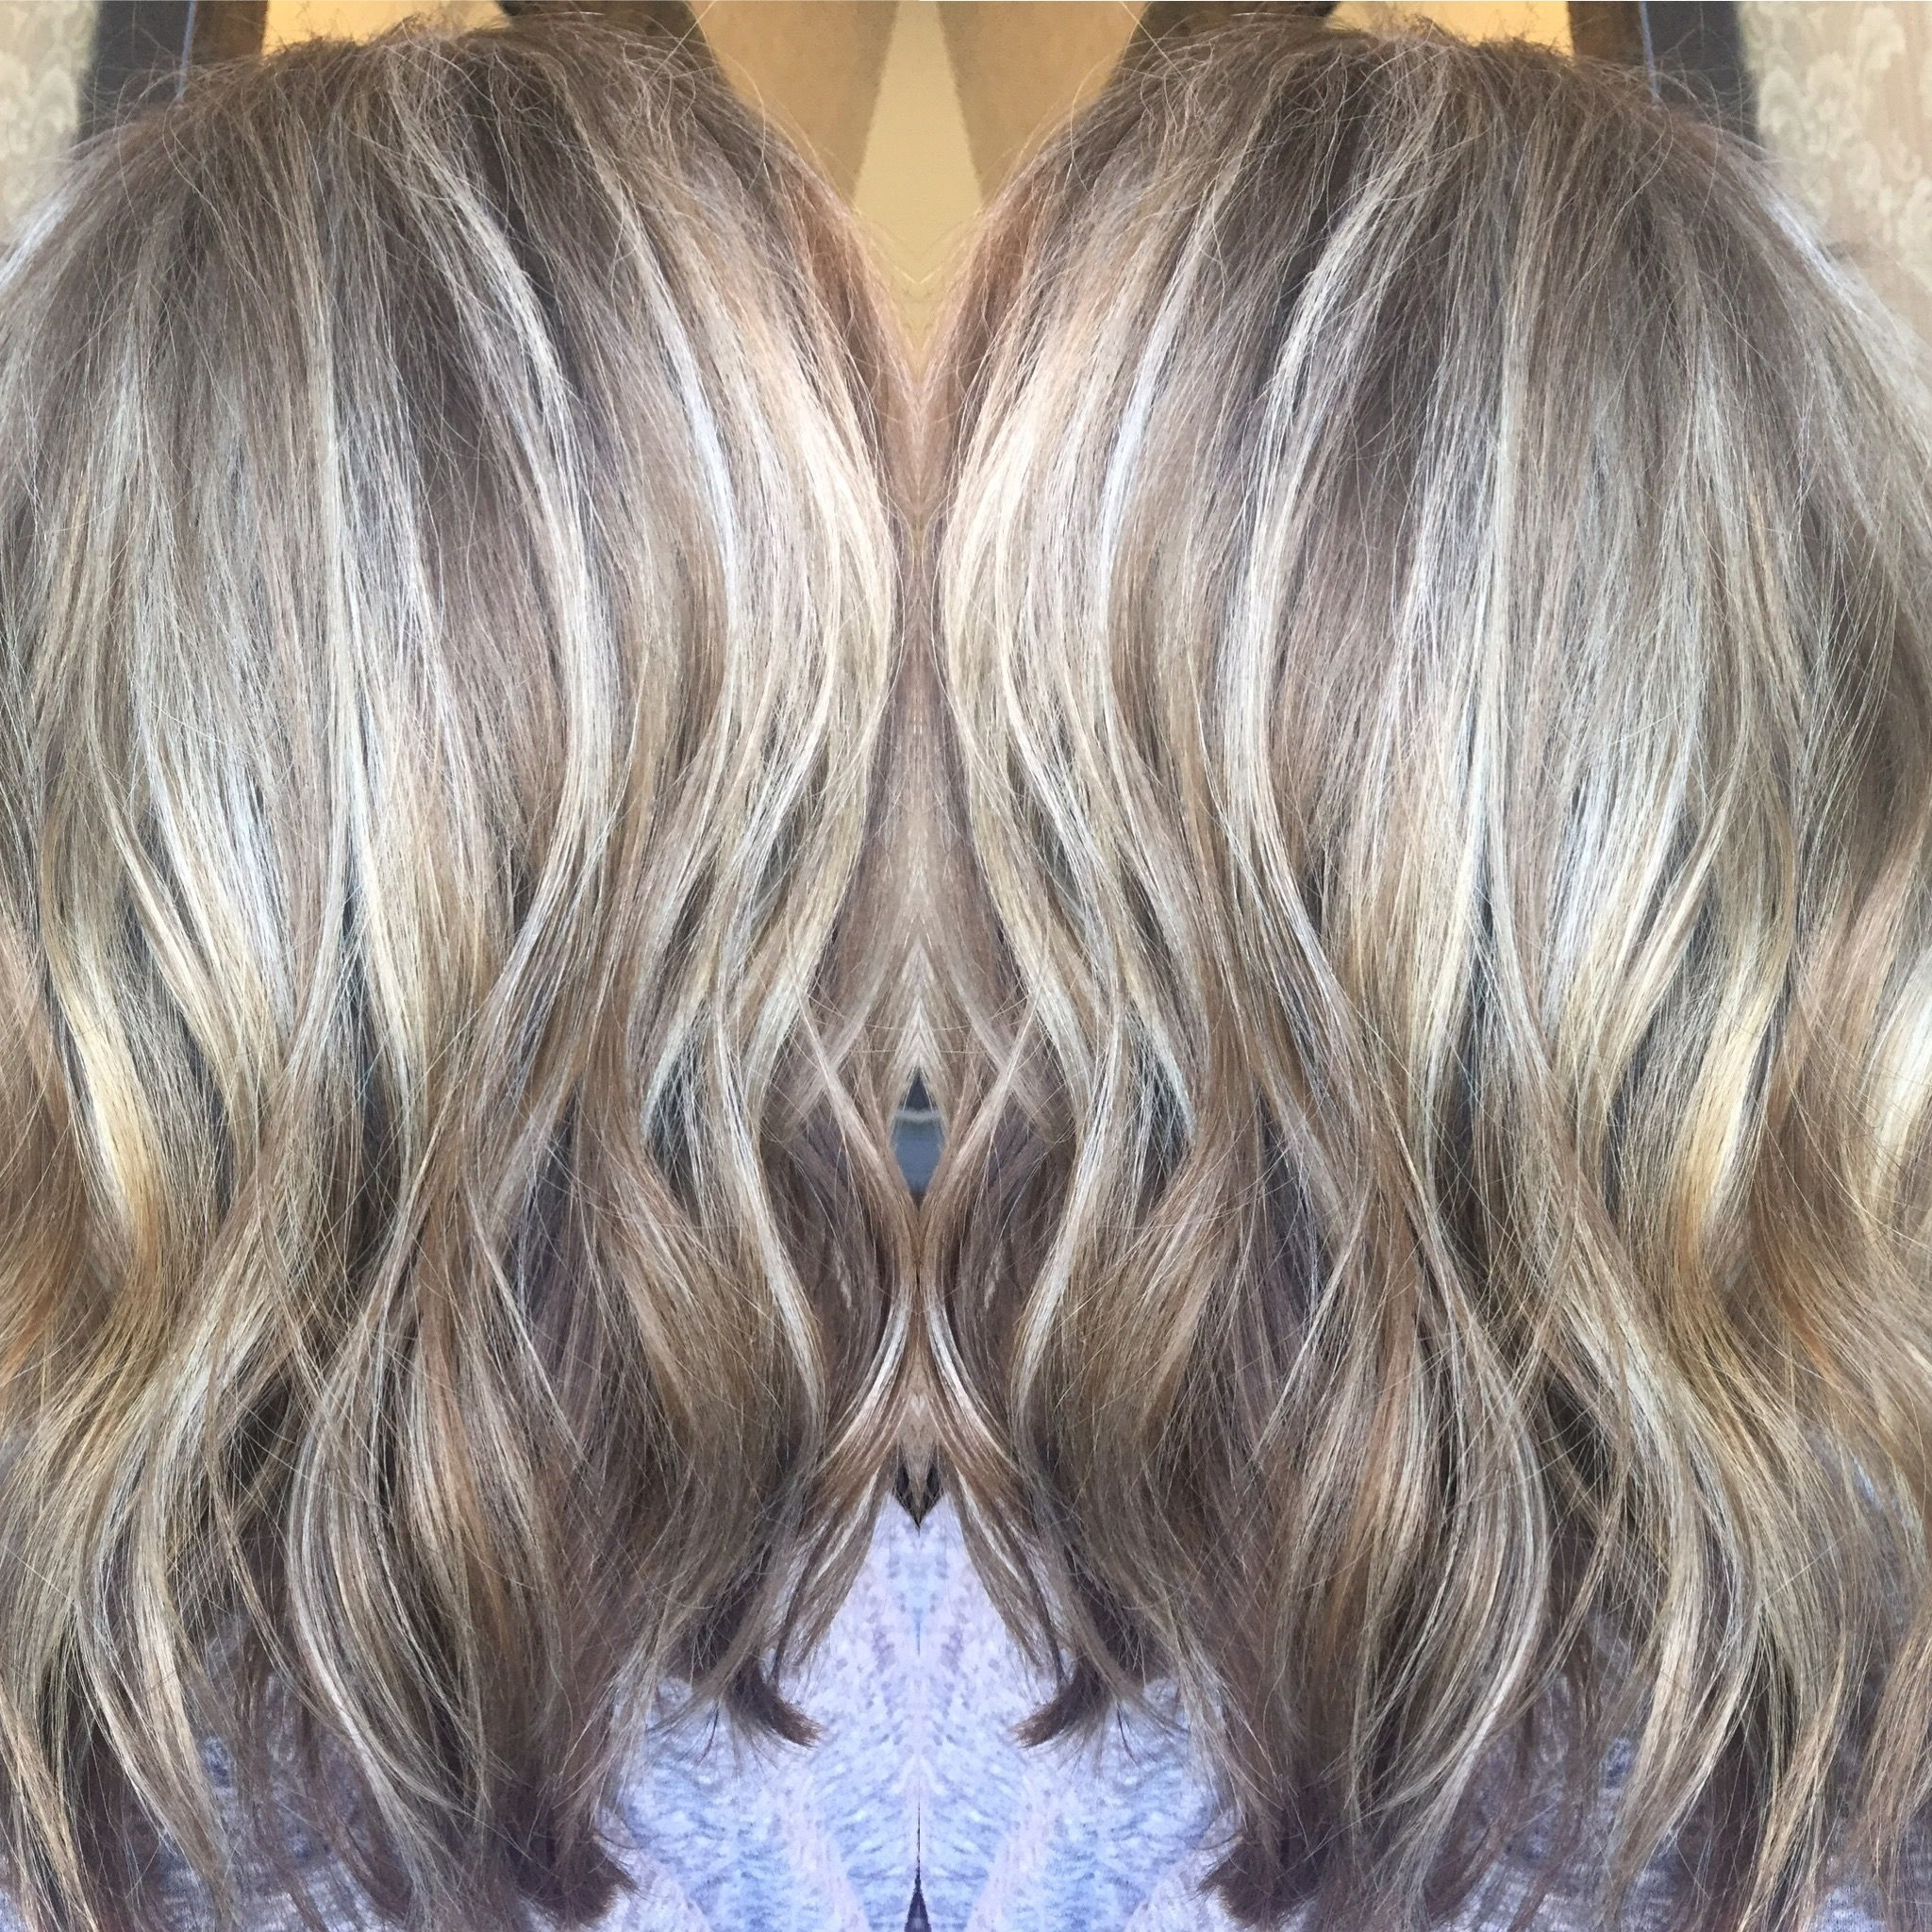 Well Known Ash Blonde Lob With Subtle Waves Pertaining To Beautiful Silver Blonde Lob,'platinum Blonde, Ash Blonde, Light (View 3 of 20)